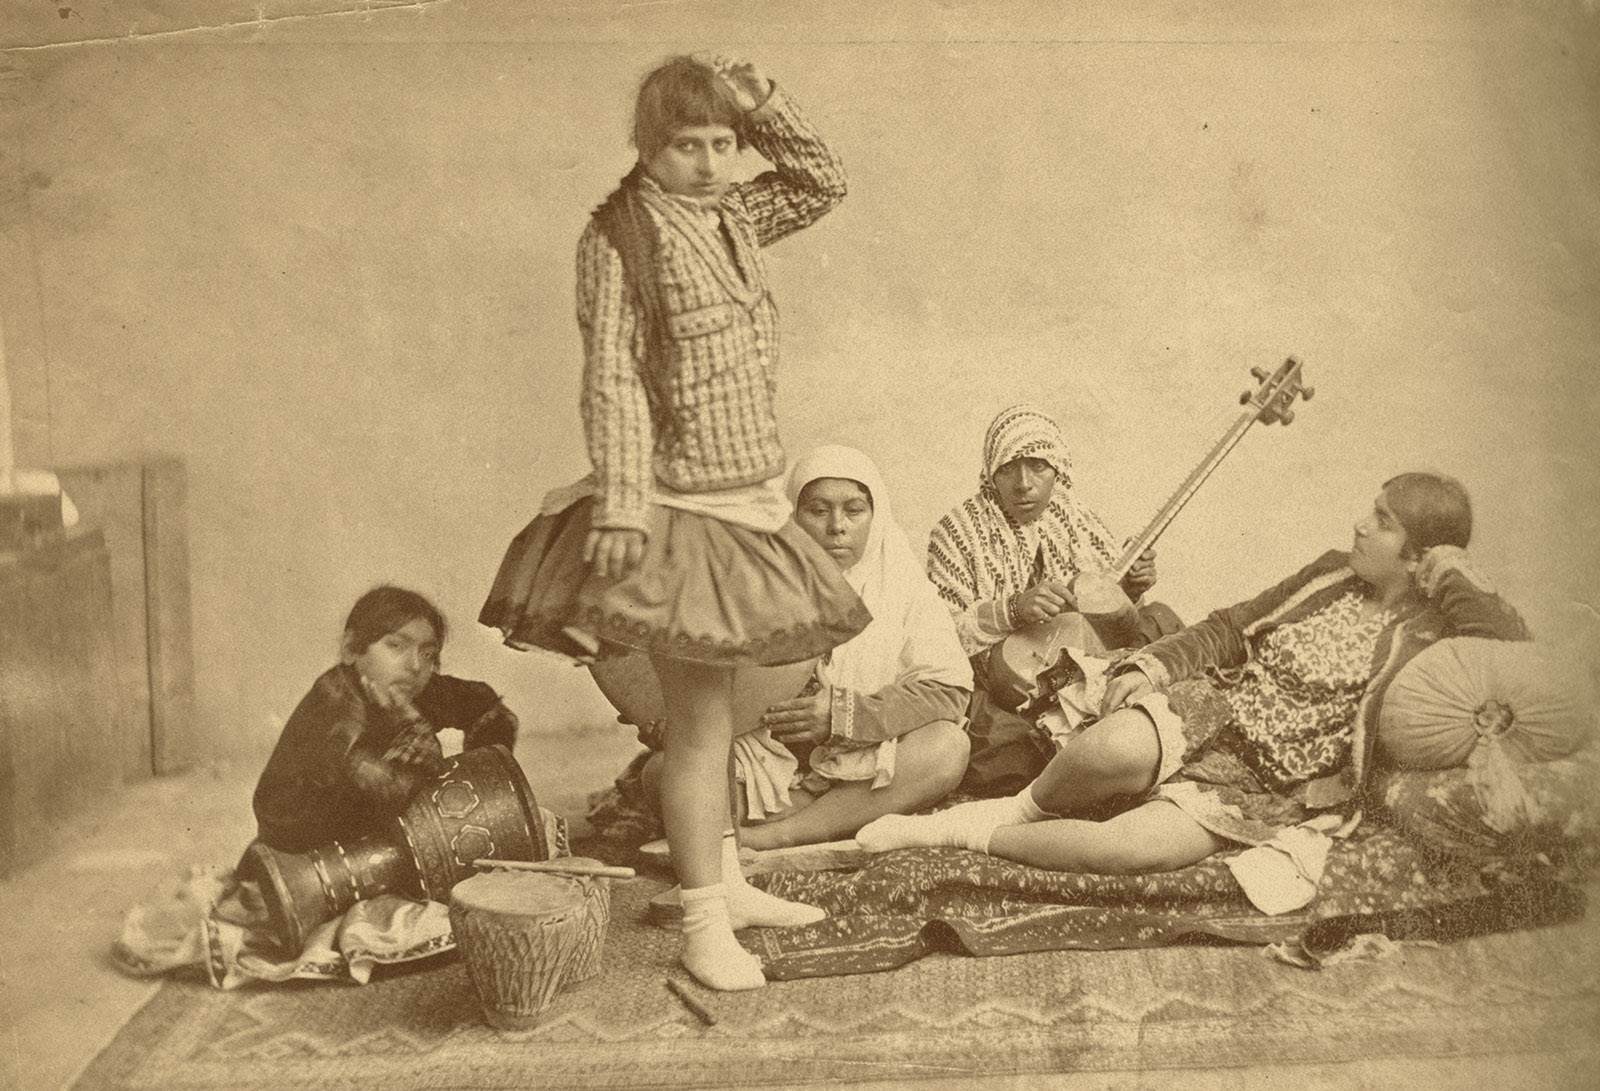 Dancers and musicians at the Qajar court, photograph taken by Antoin Sevruguin, late nineteenth century